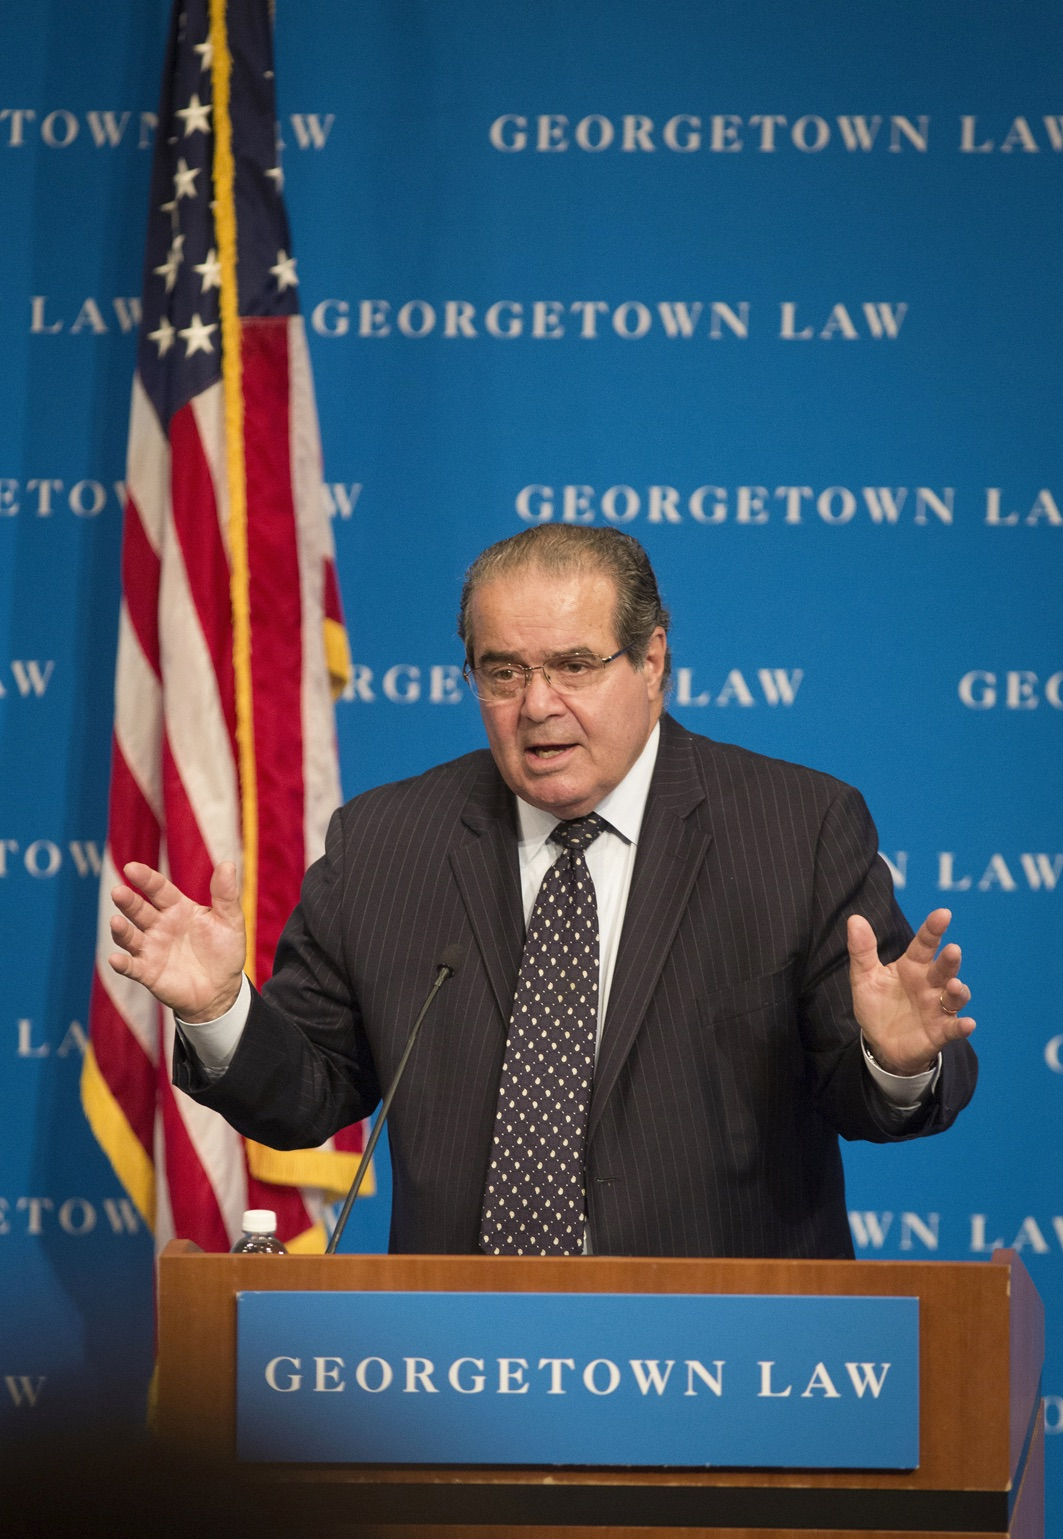 U.S. Supreme Court Justice Antonin Scalia is seen in this Aug. 30, 2013, file photo at Georgetown University Law Center in Washington. (CNS photo/Nancy Phelan Wiechec) See OBIT-SCALIA Feb. 15, 2016.